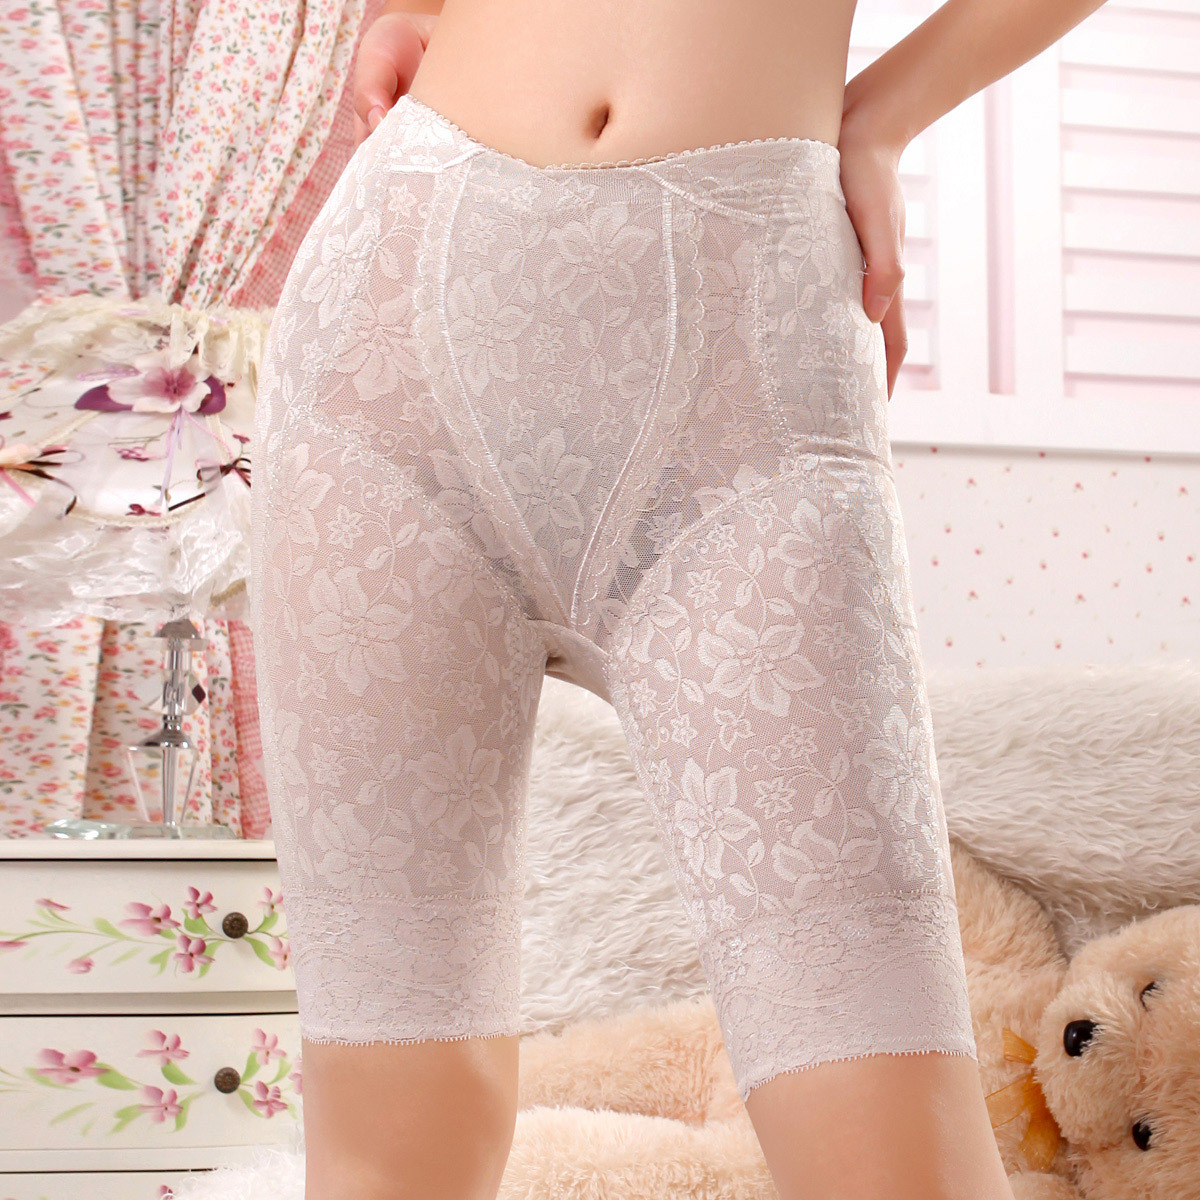 Summer ultra-thin mid waist abdomen drawing butt-lifting pants body shaping corset panties k103